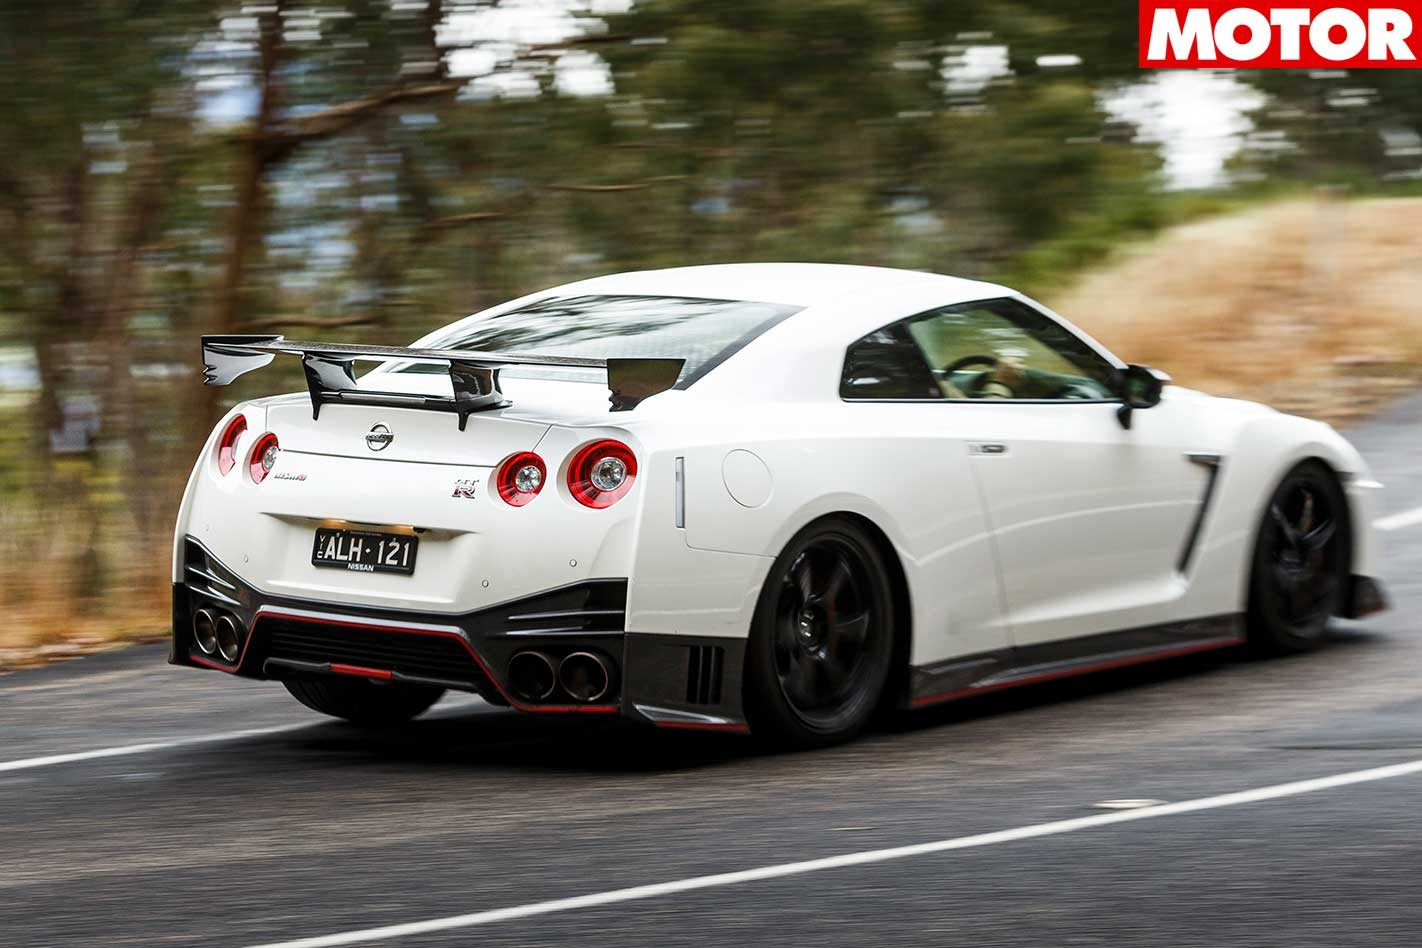 Nissan Gt R Nismo Performance Car Of The Year 2018 4th Place Specs Compared To That First R35 Landed In Oz And Topped Pcoty Podium 2009 Latest Has Stacked On 84kw 64nm Some Fancy Carbon Fibre